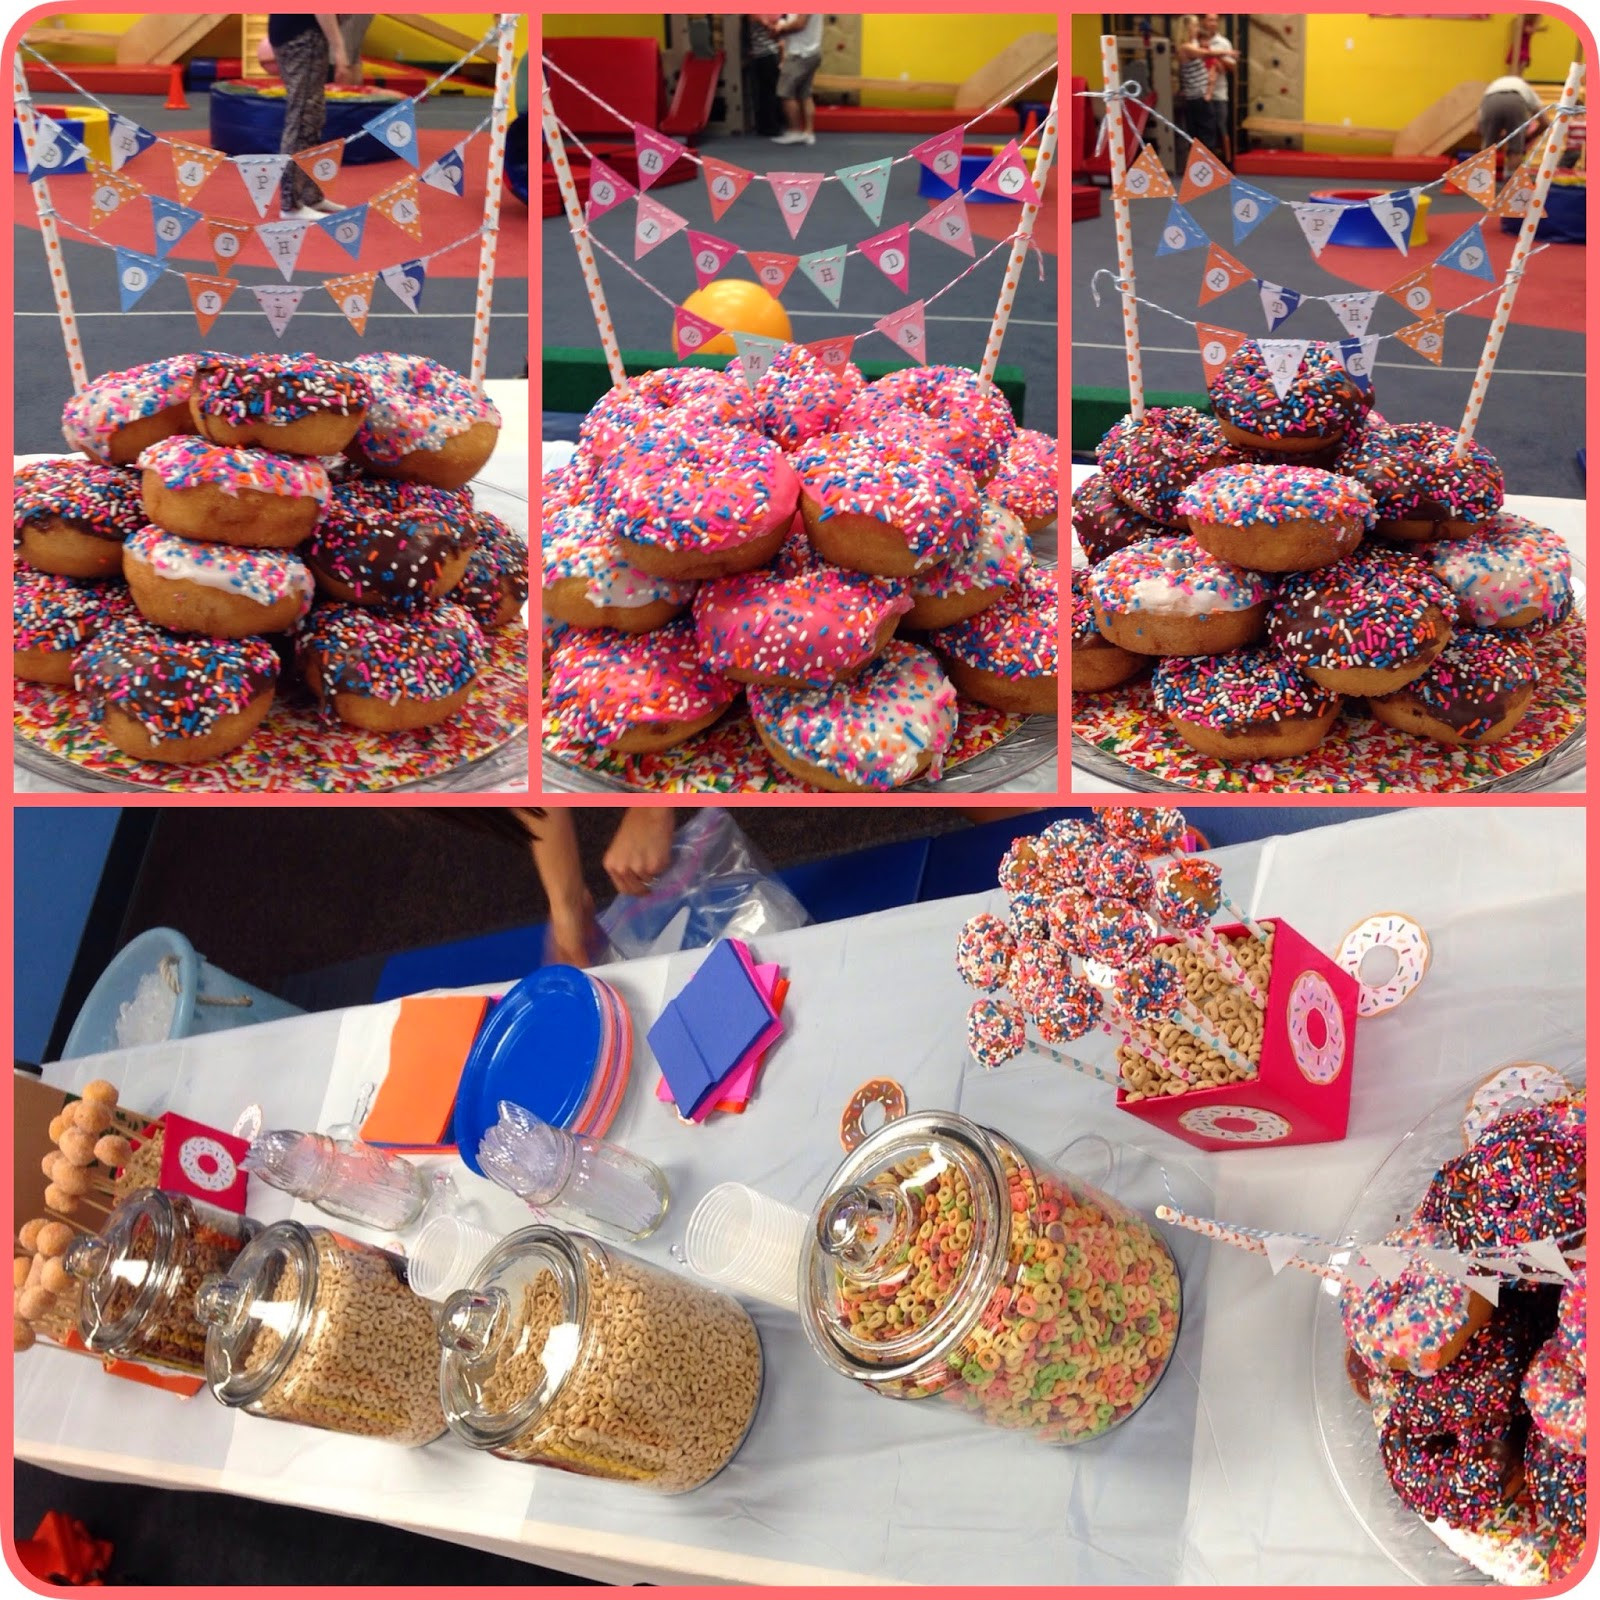 Best ideas about Donut Birthday Party . Save or Pin Party of 5 Donut birthday party Now.